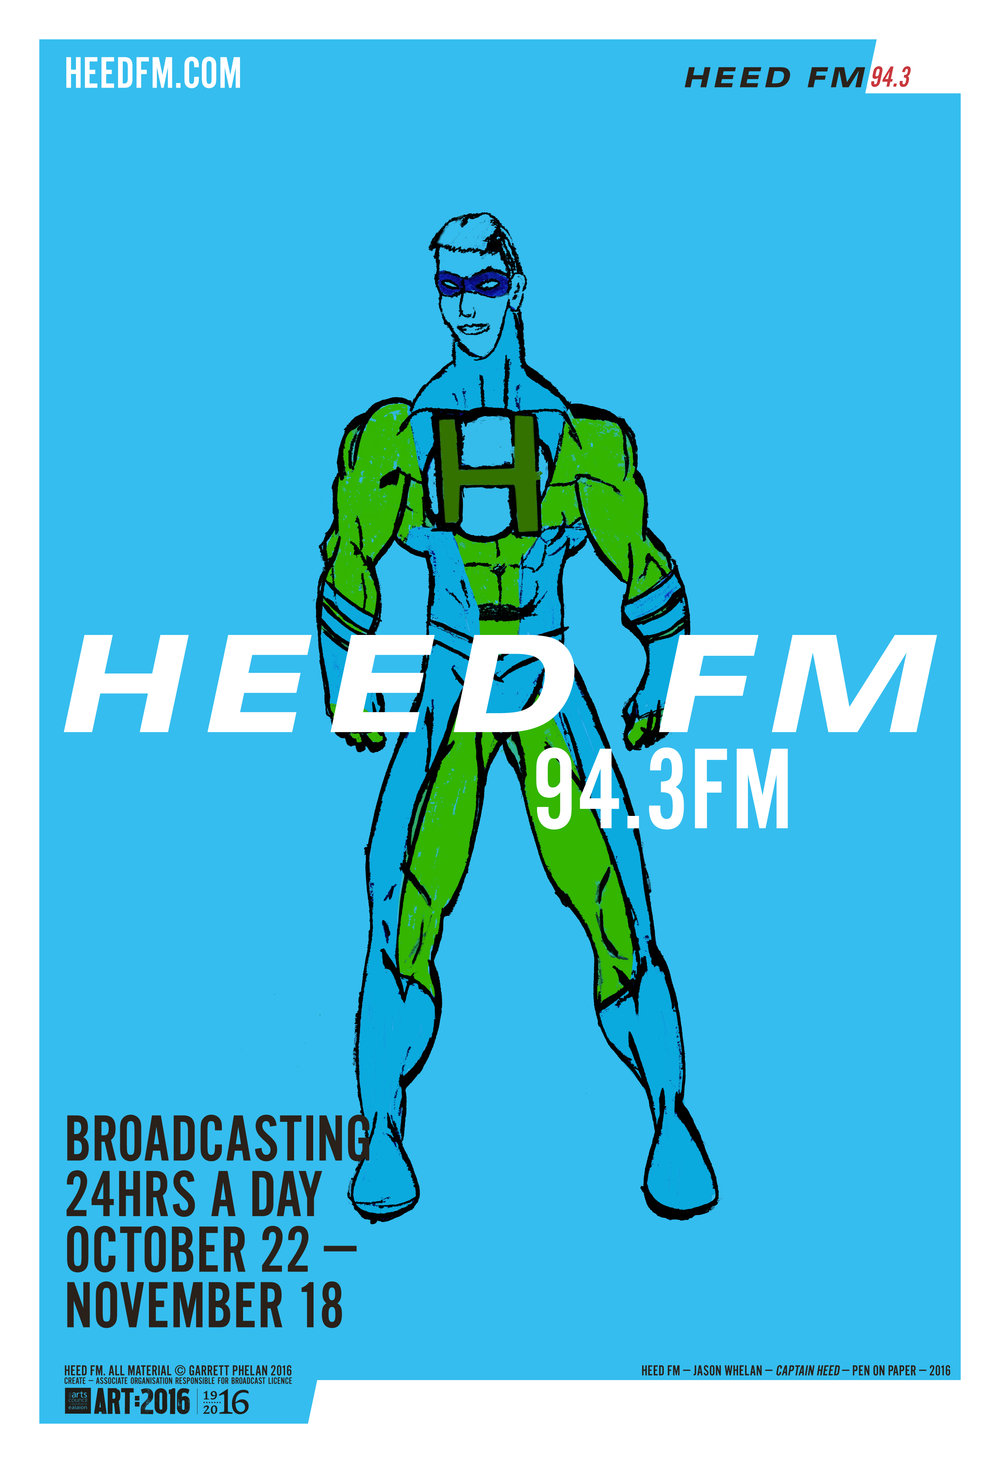 heed fm 4 sheets artwork-5.jpg